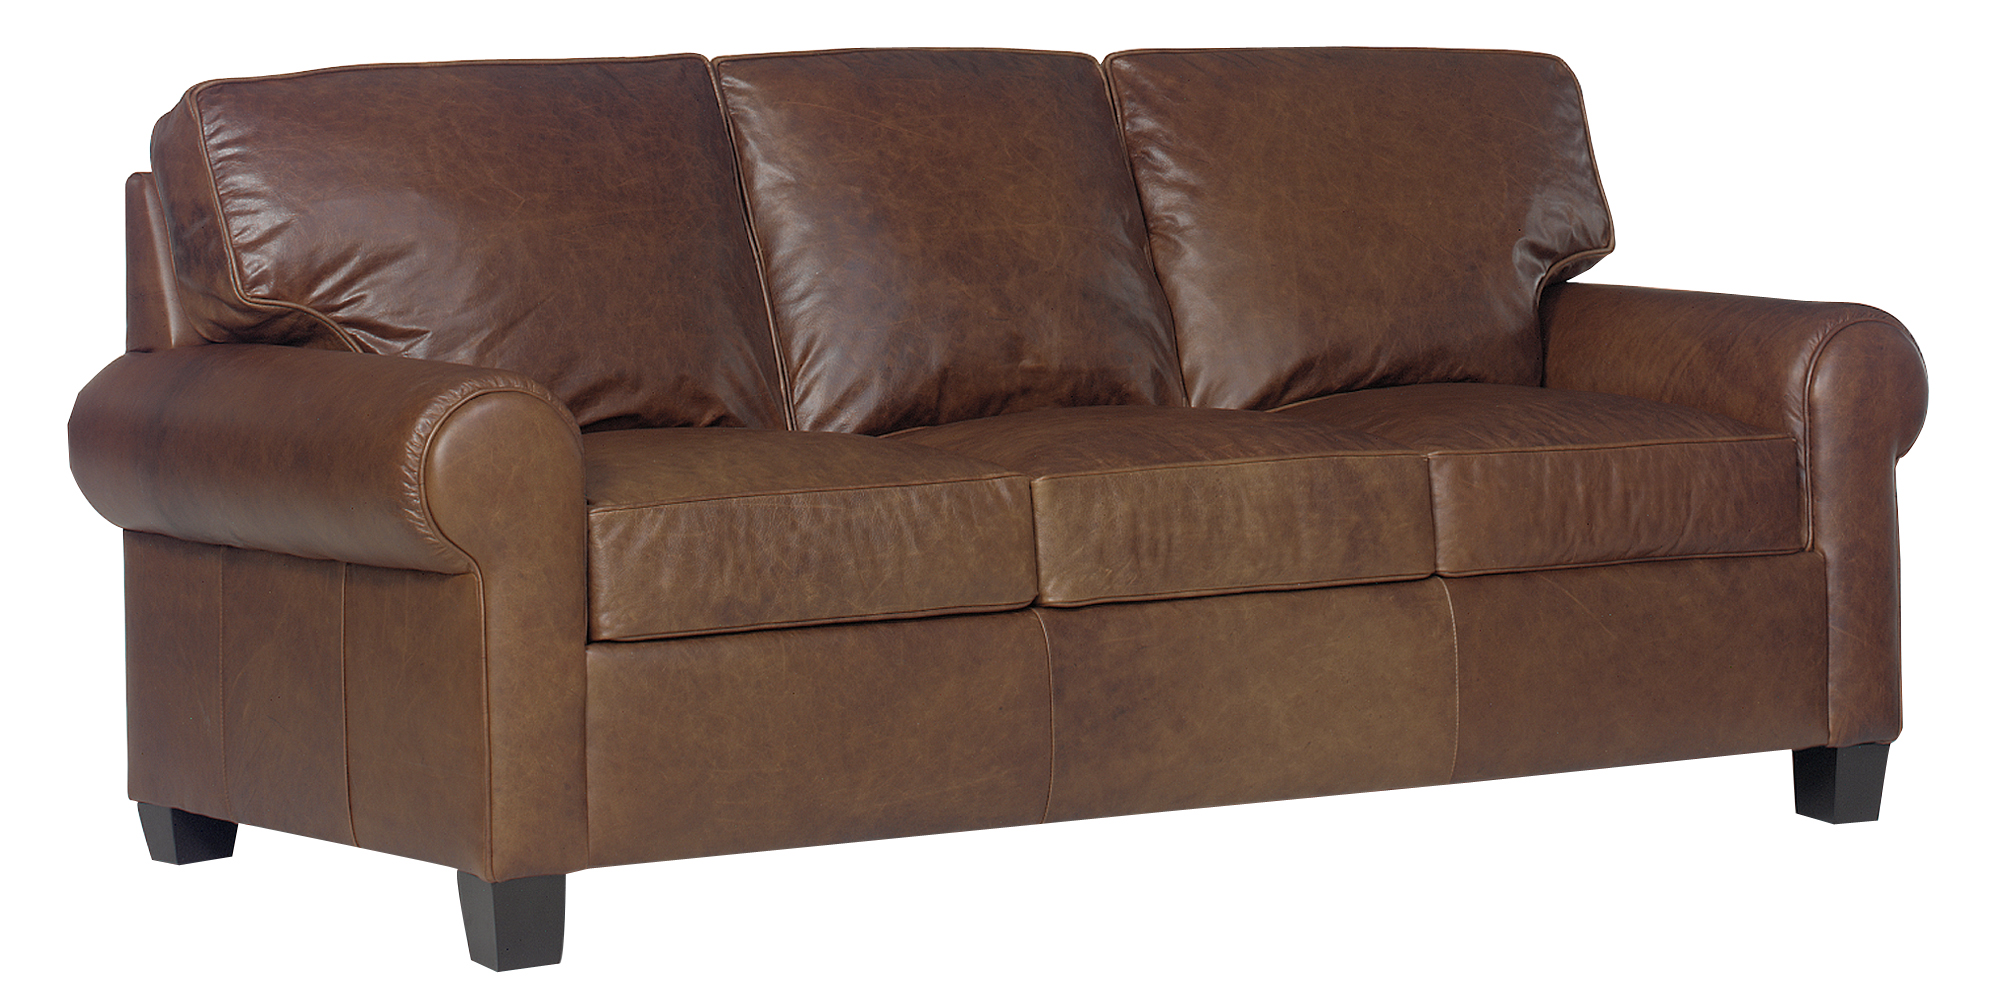 Classic Panel Lawson Arm Brown Leather Sofa Group Club